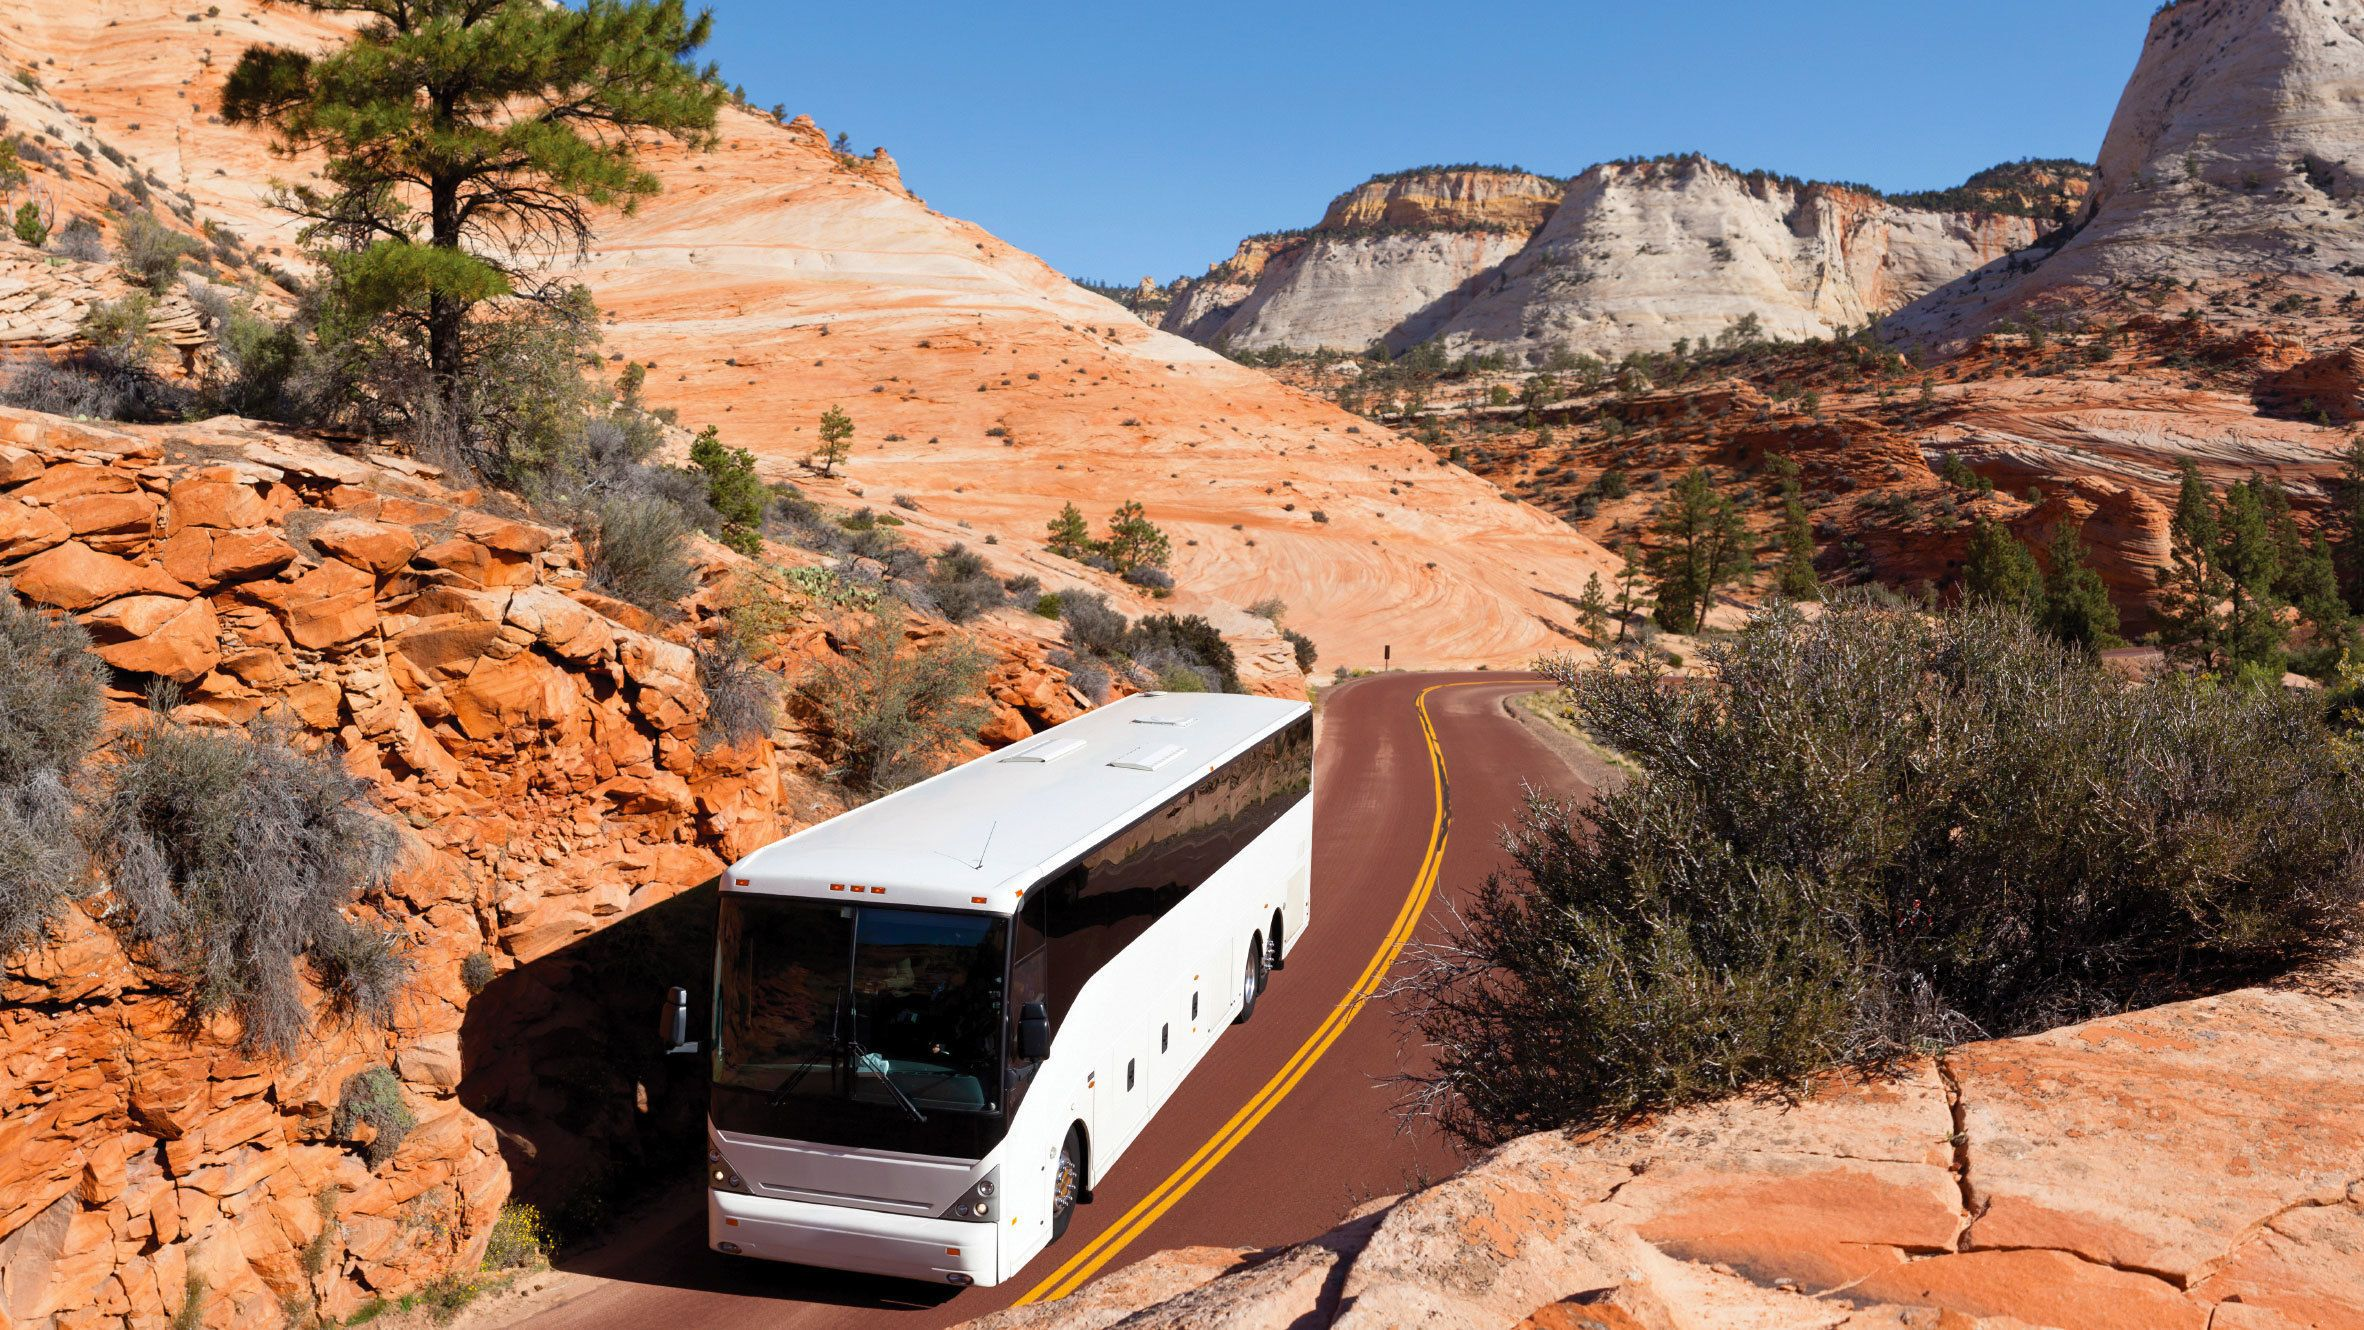 Moving tour bus at the base of the Grand Canyon